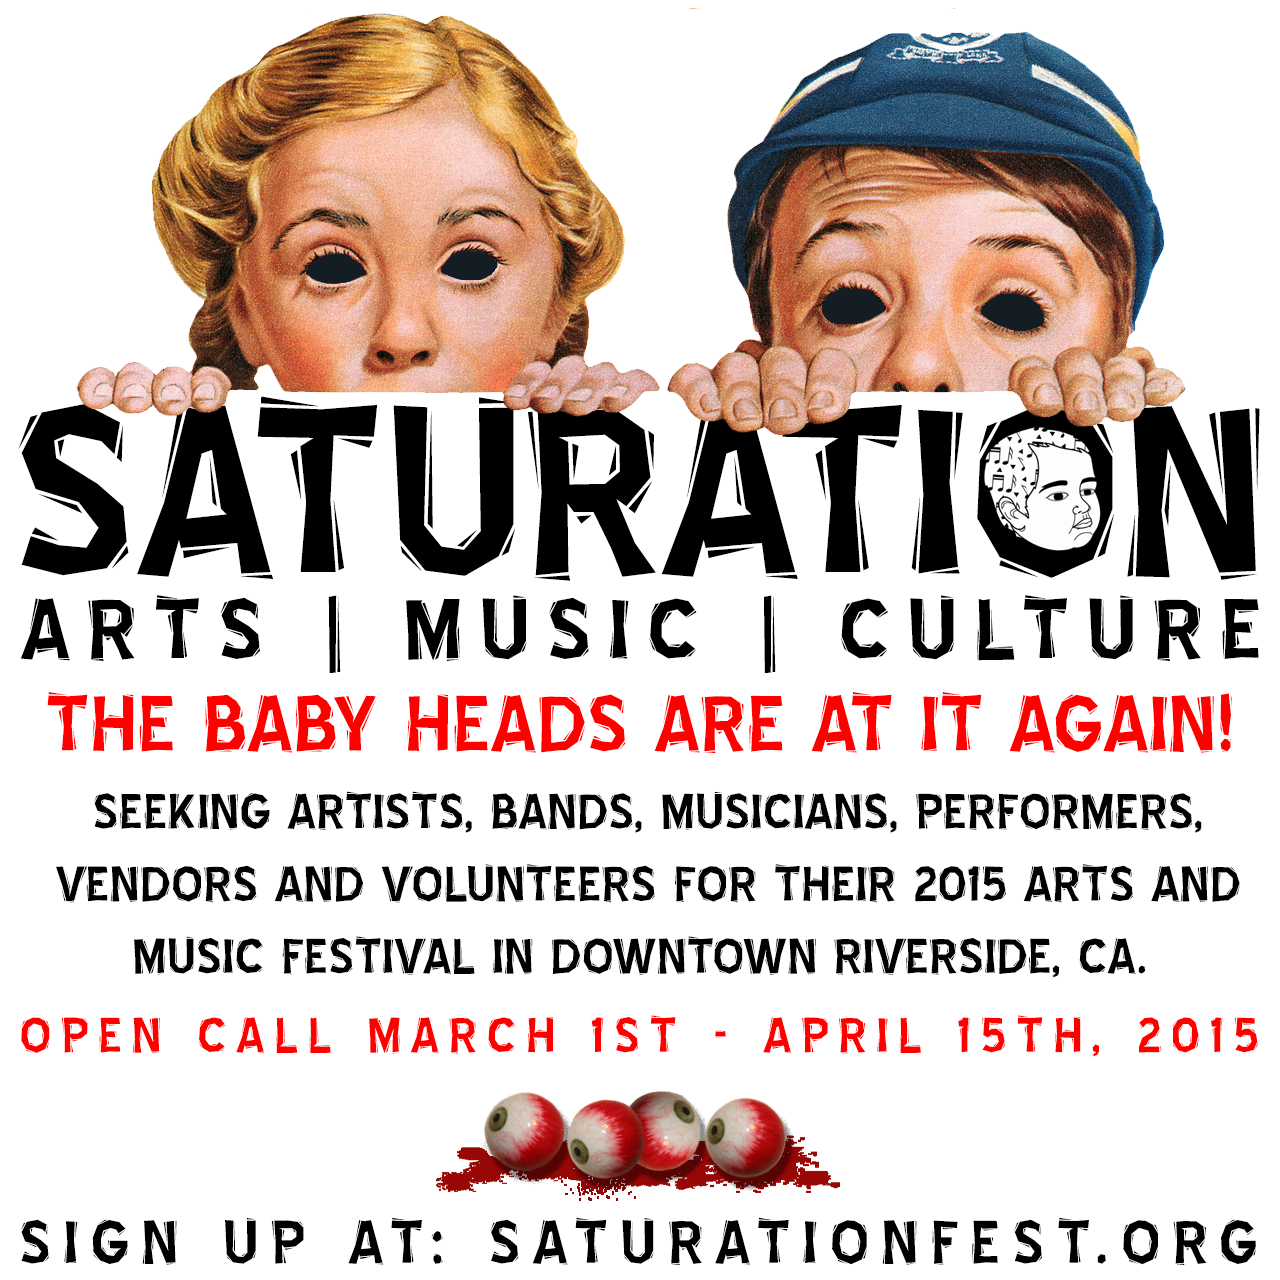 Saturation Fest 2015 Sign-up